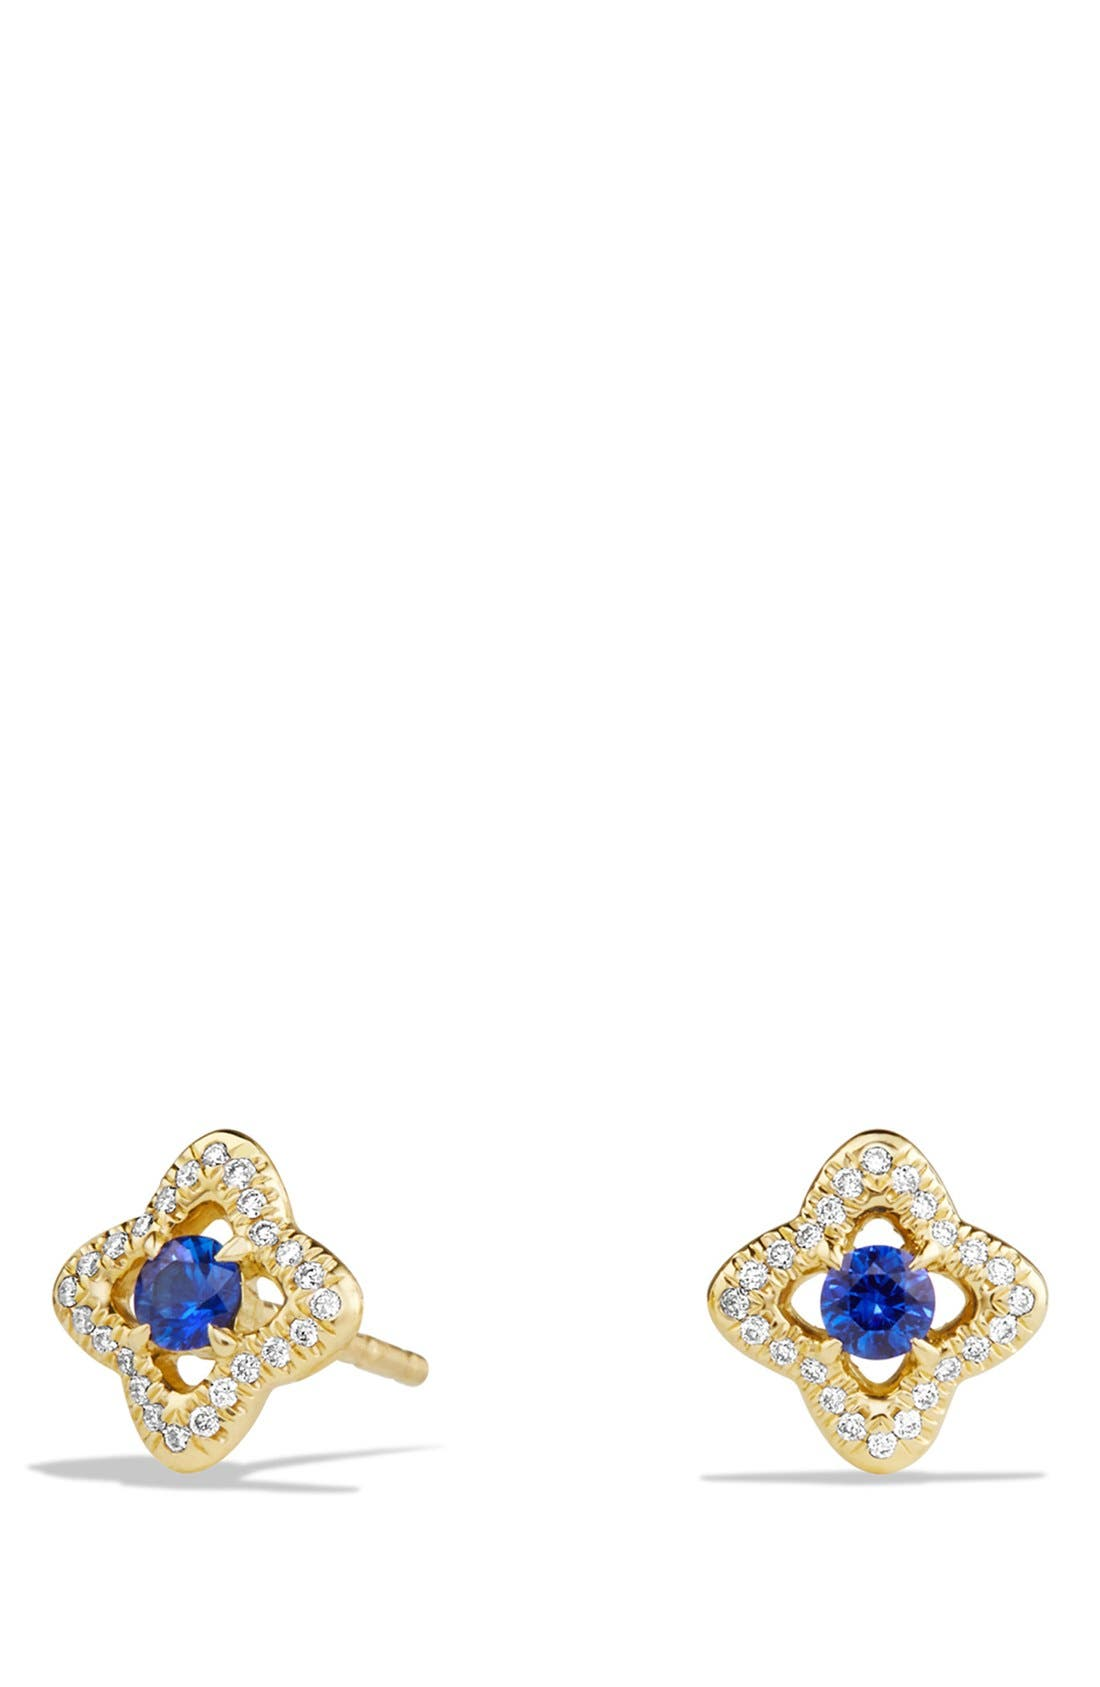 'Venetian Quatrefoil' Earrings with Precious Stones and Diamonds in 18K Gold,                         Main,                         color, BLUE SAPPHIRE